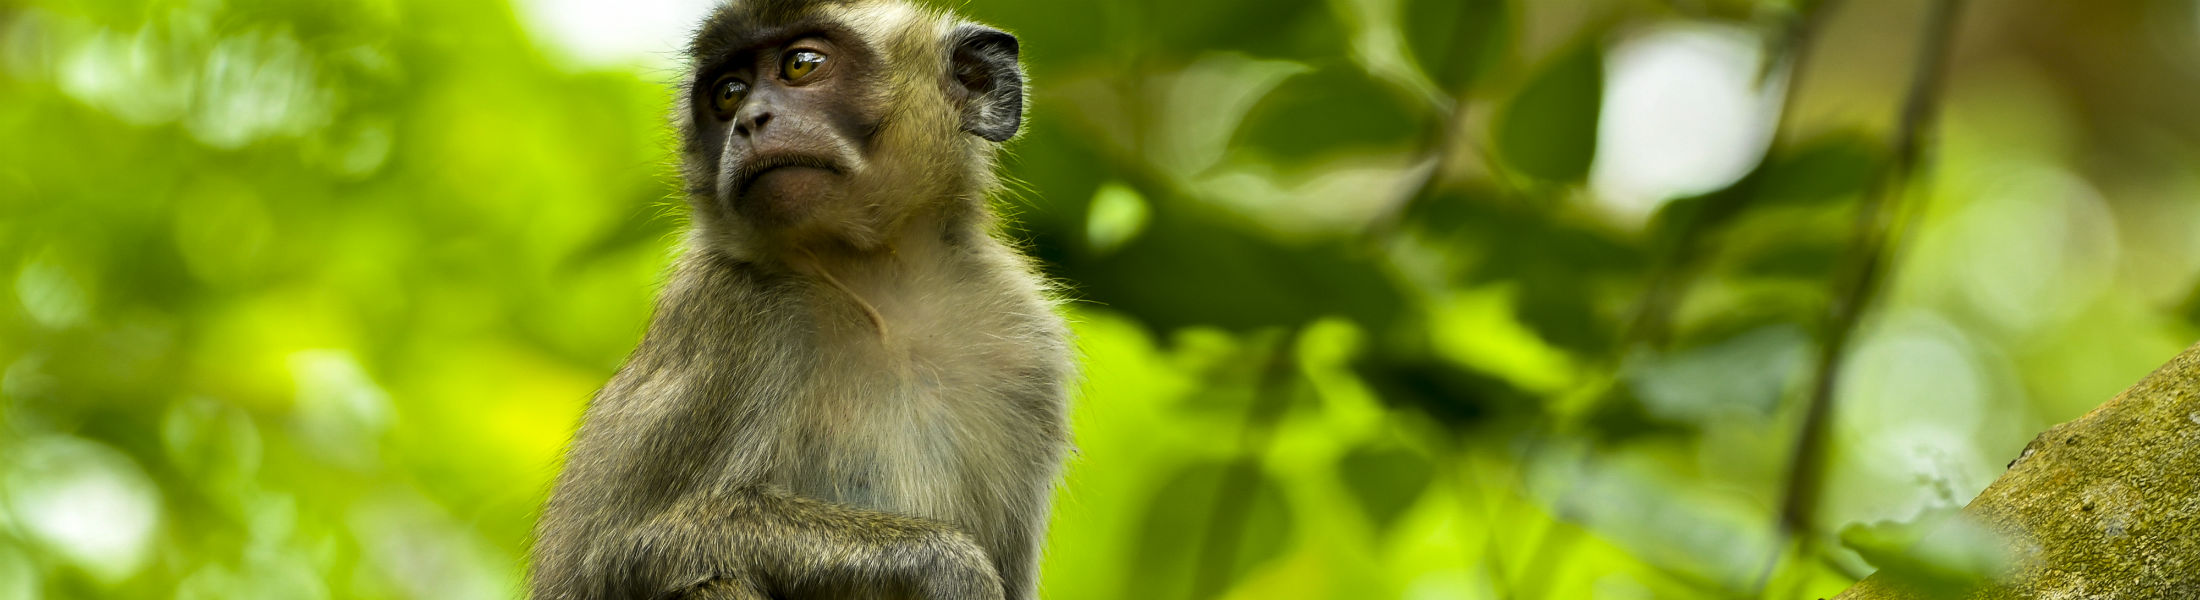 Wild macaque monkey in Mauritius